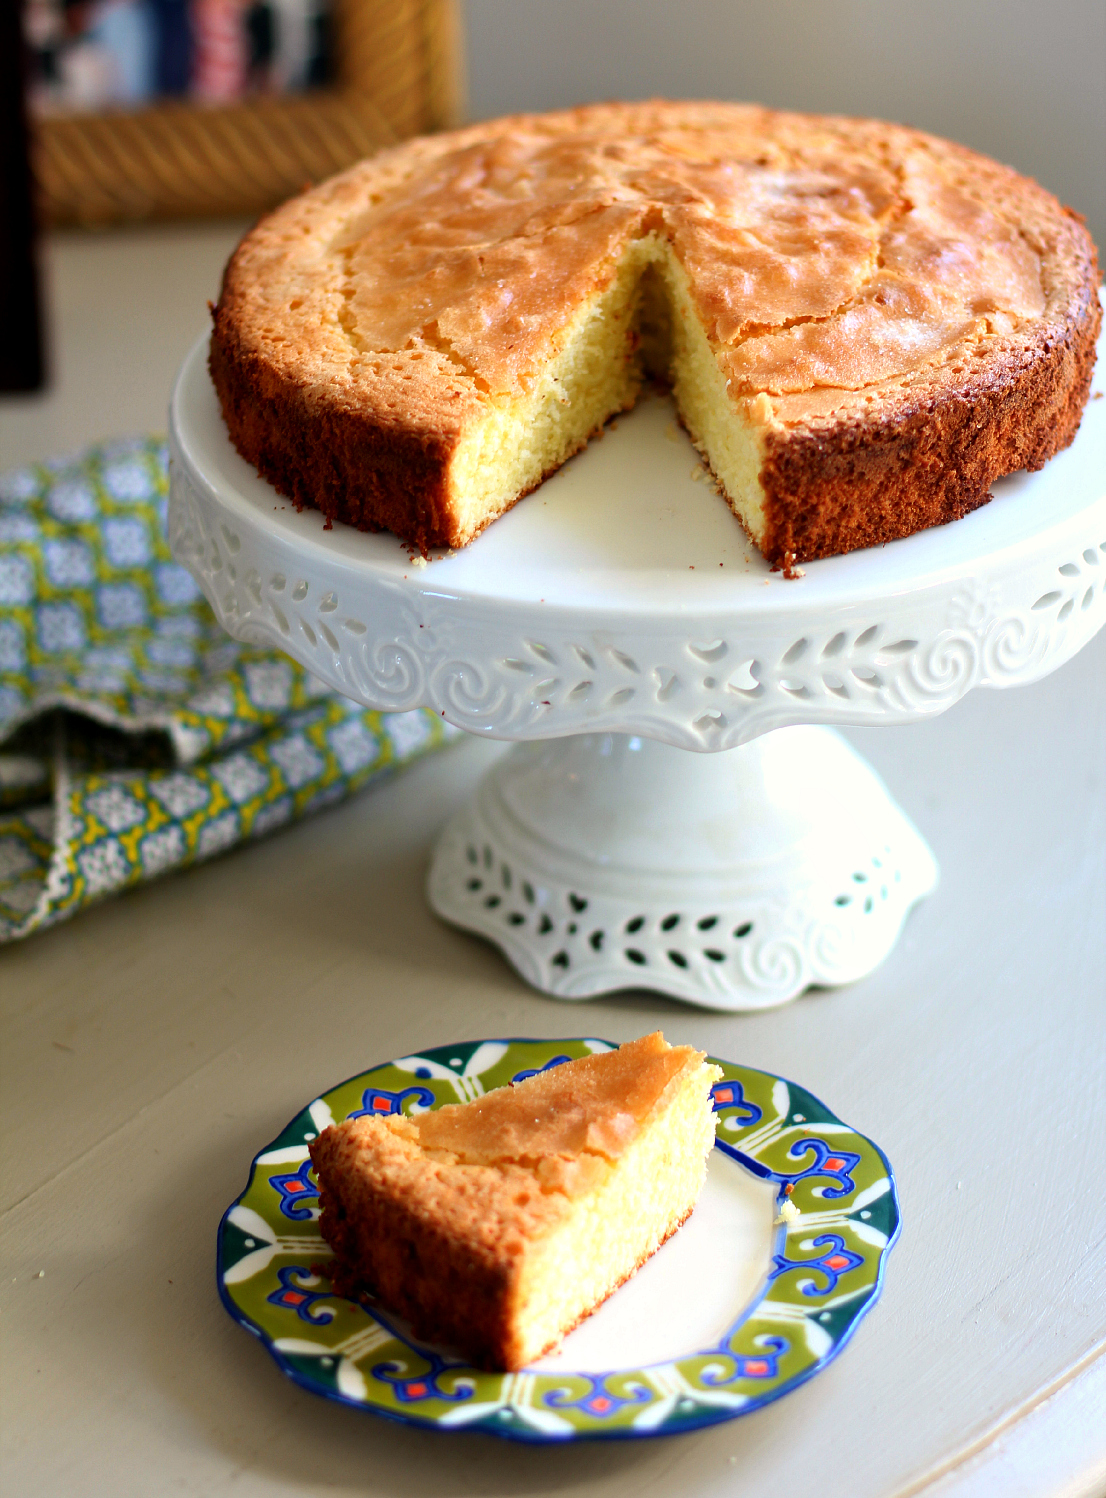 Olive Oil Cake with Grand Marnier Glaze